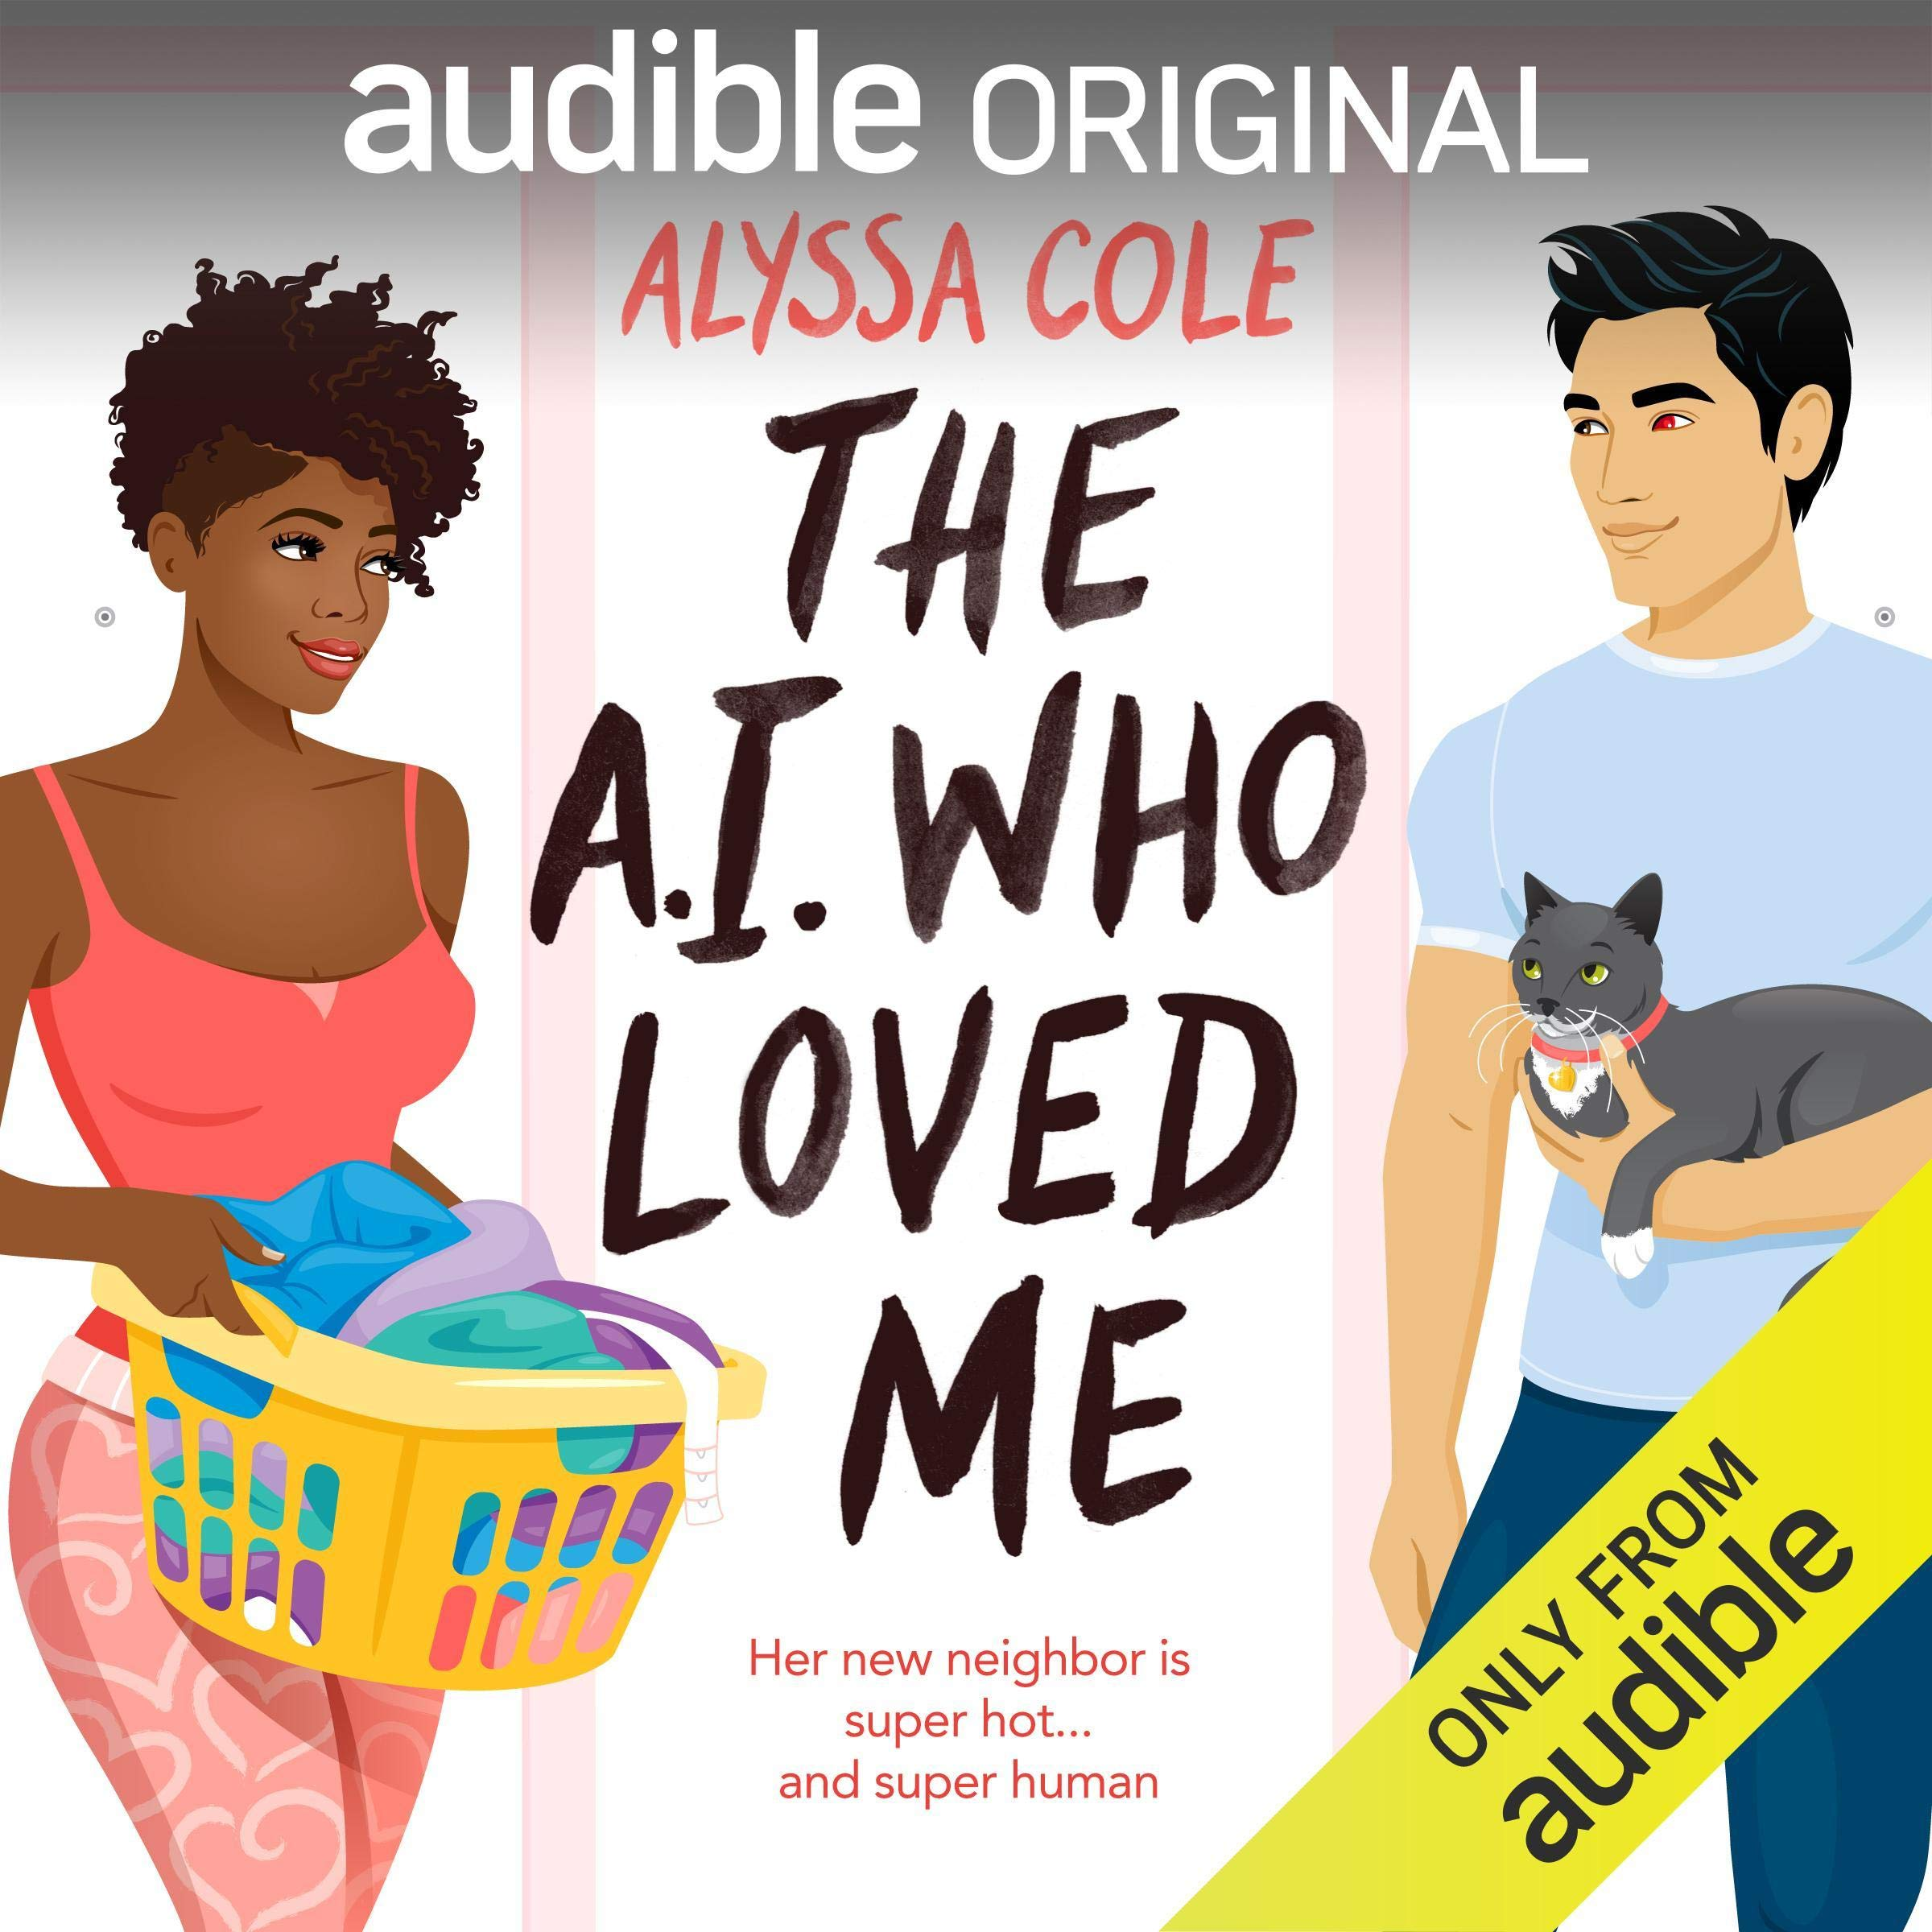 SPOTLIGHT: The A.I. Who Loved Me by Alyssa Cole (Audible Original)